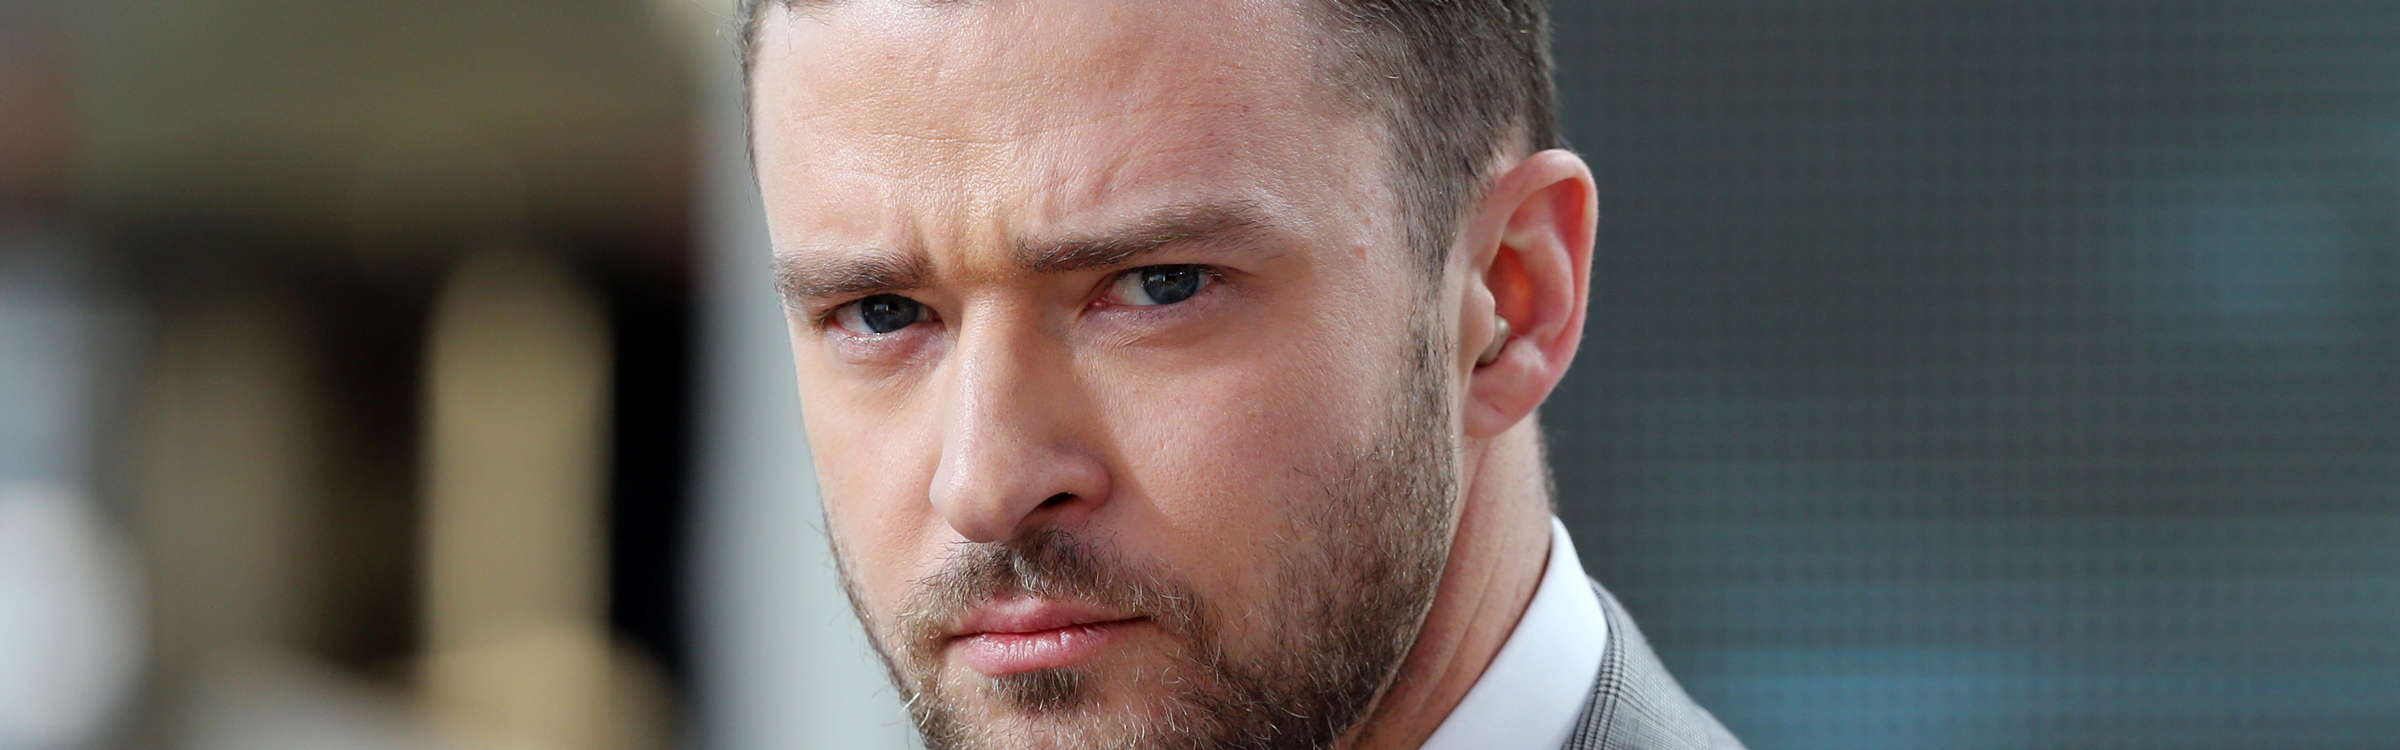 Justin timberlake top header